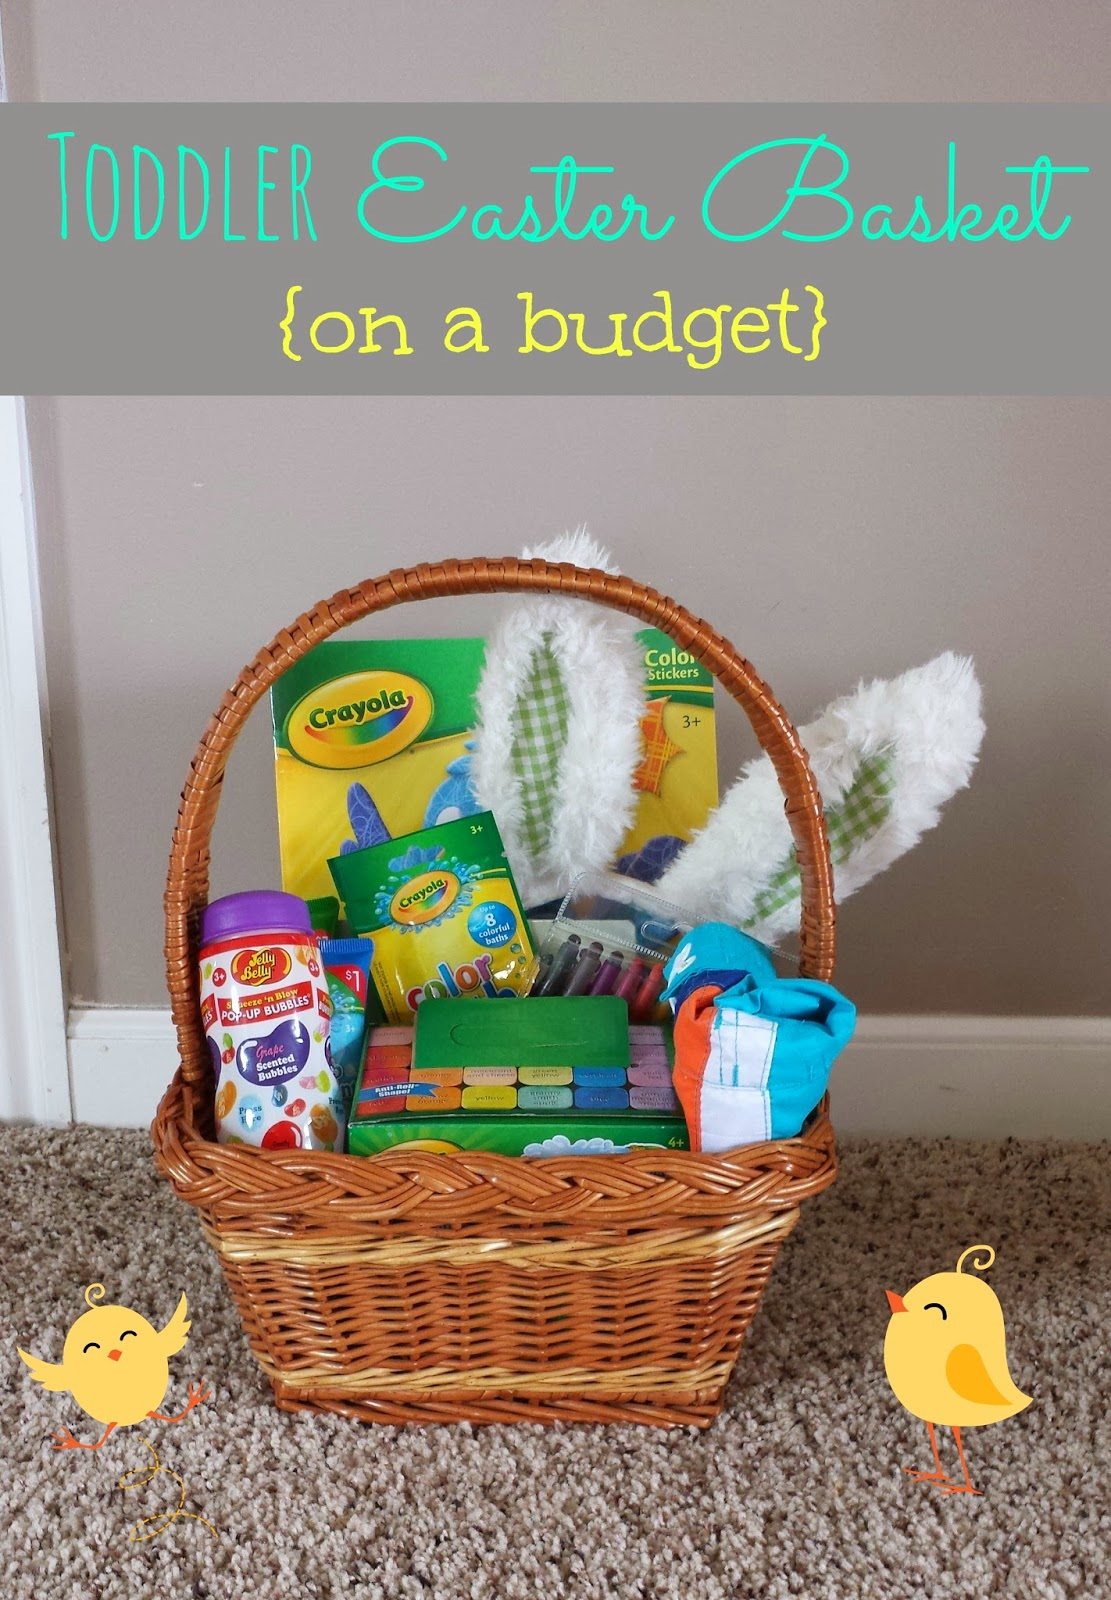 Simple suburbia toddler easter basket ideas here is what i came up with for a toddler easter basket on a budget negle